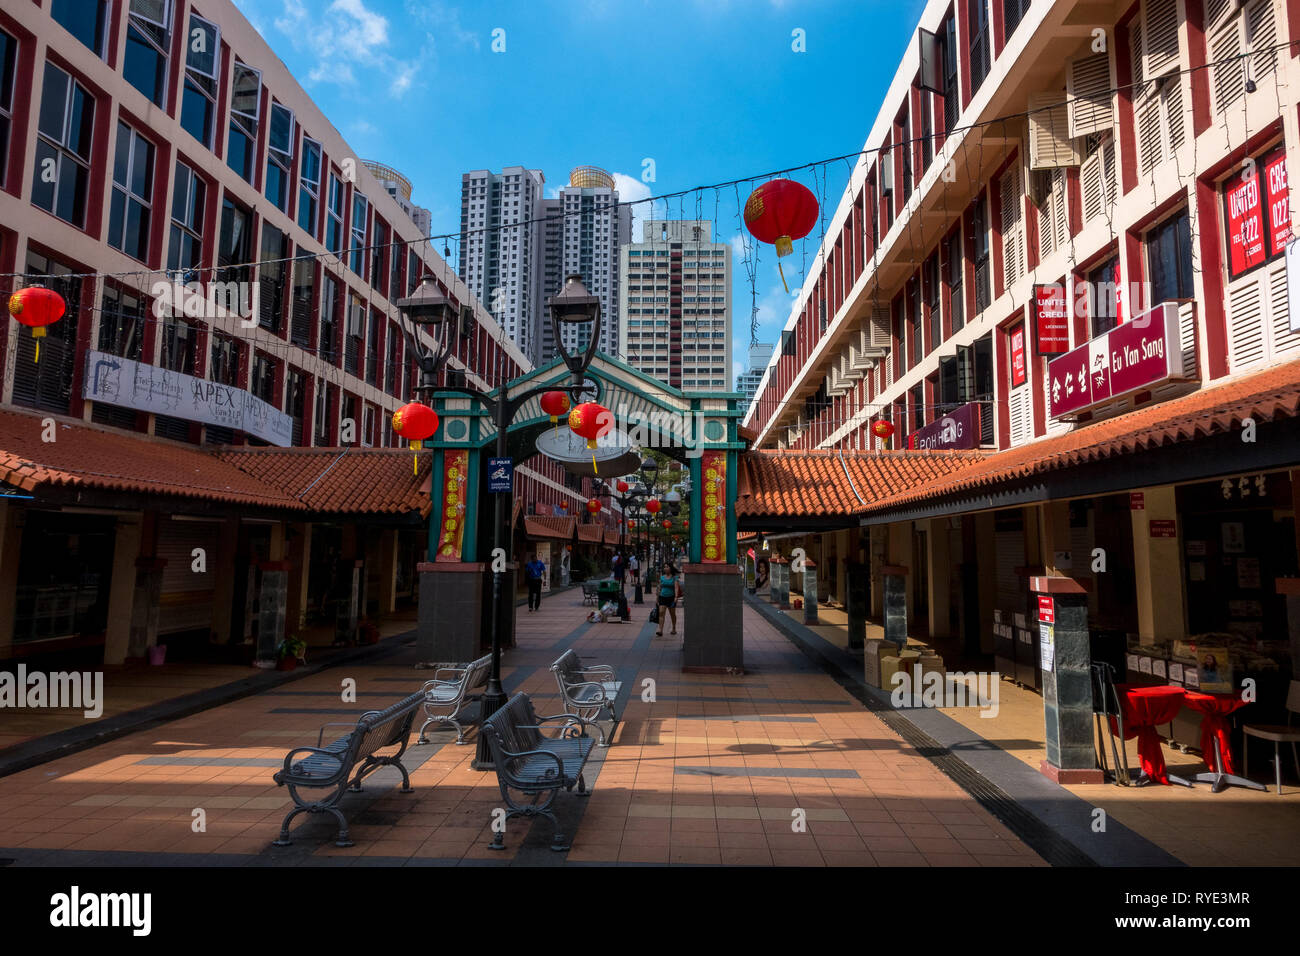 Toa Payoh Outdoor Mall Shops With Chinese New Year Lanterns - Singapore Stock Photo